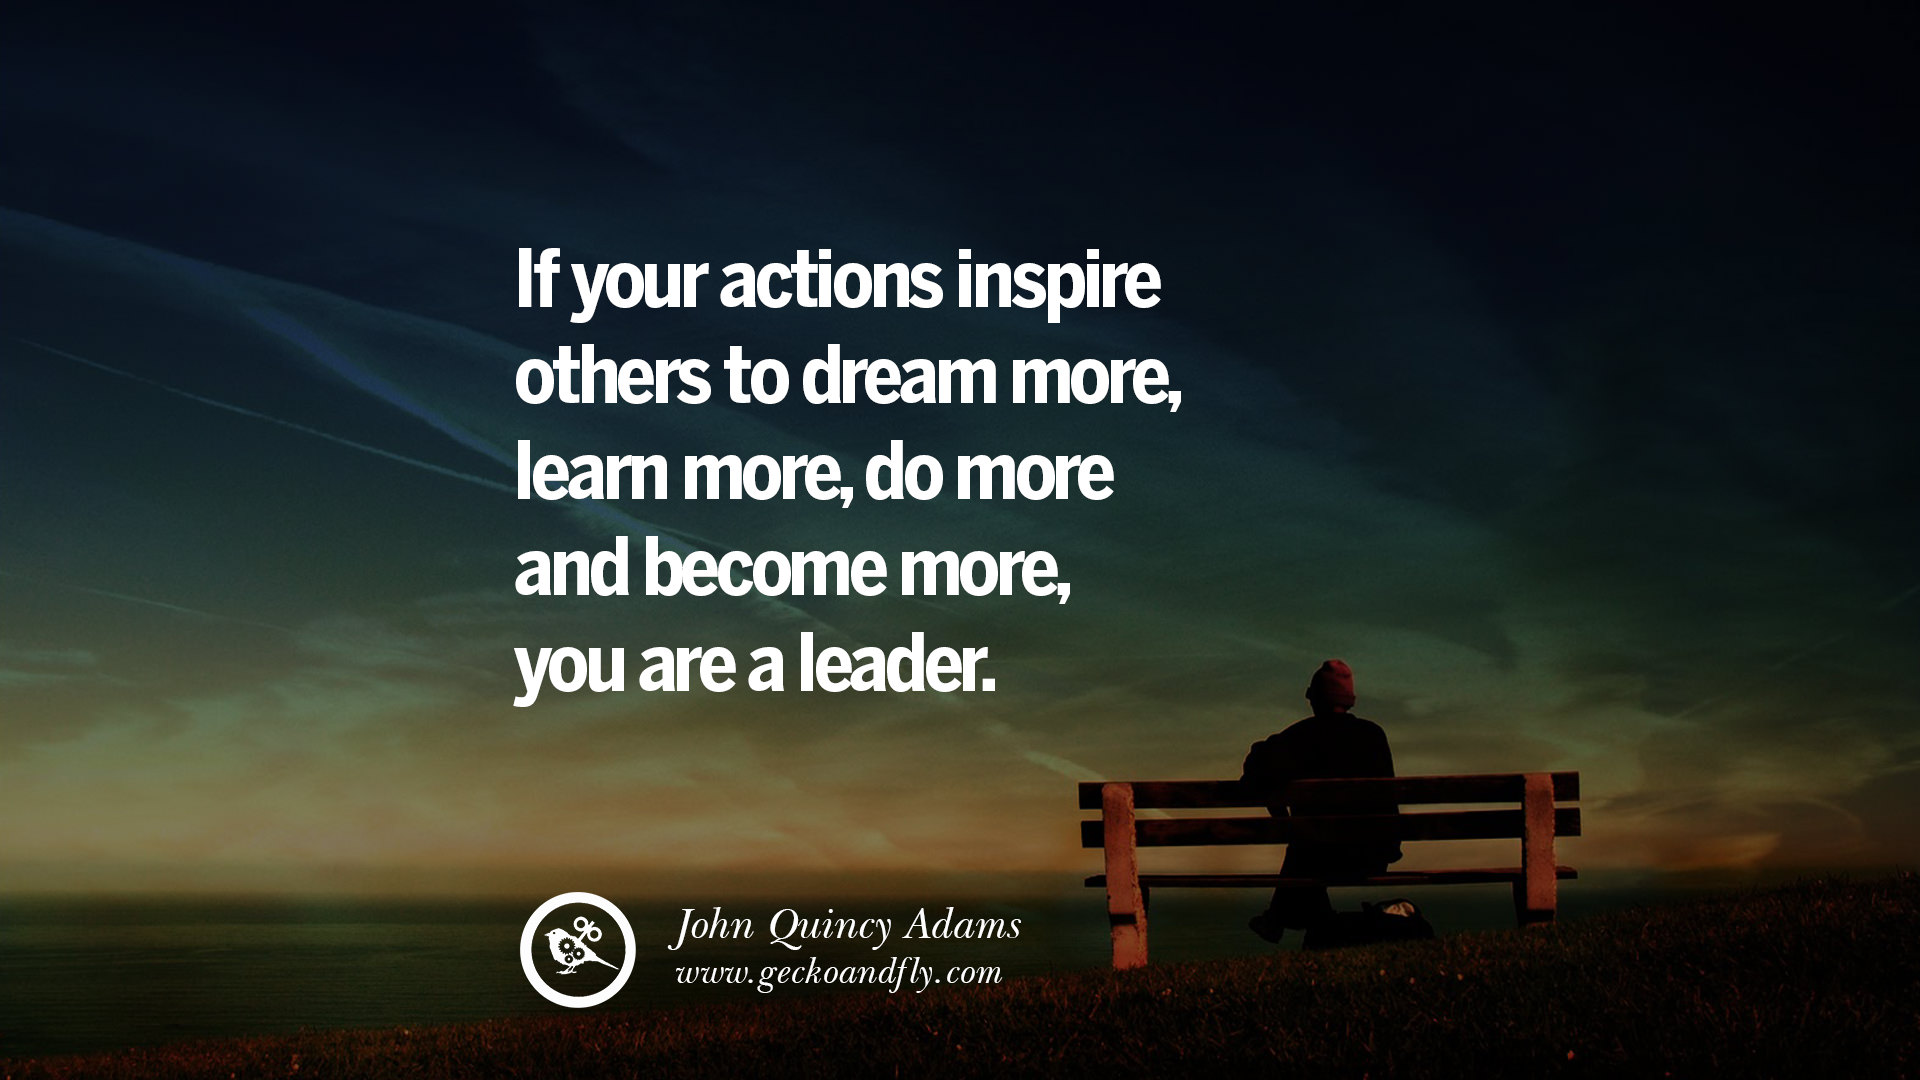 Inspiring Leadership Quotes 18 Uplifting And Motivational Quotes On Management Leadership